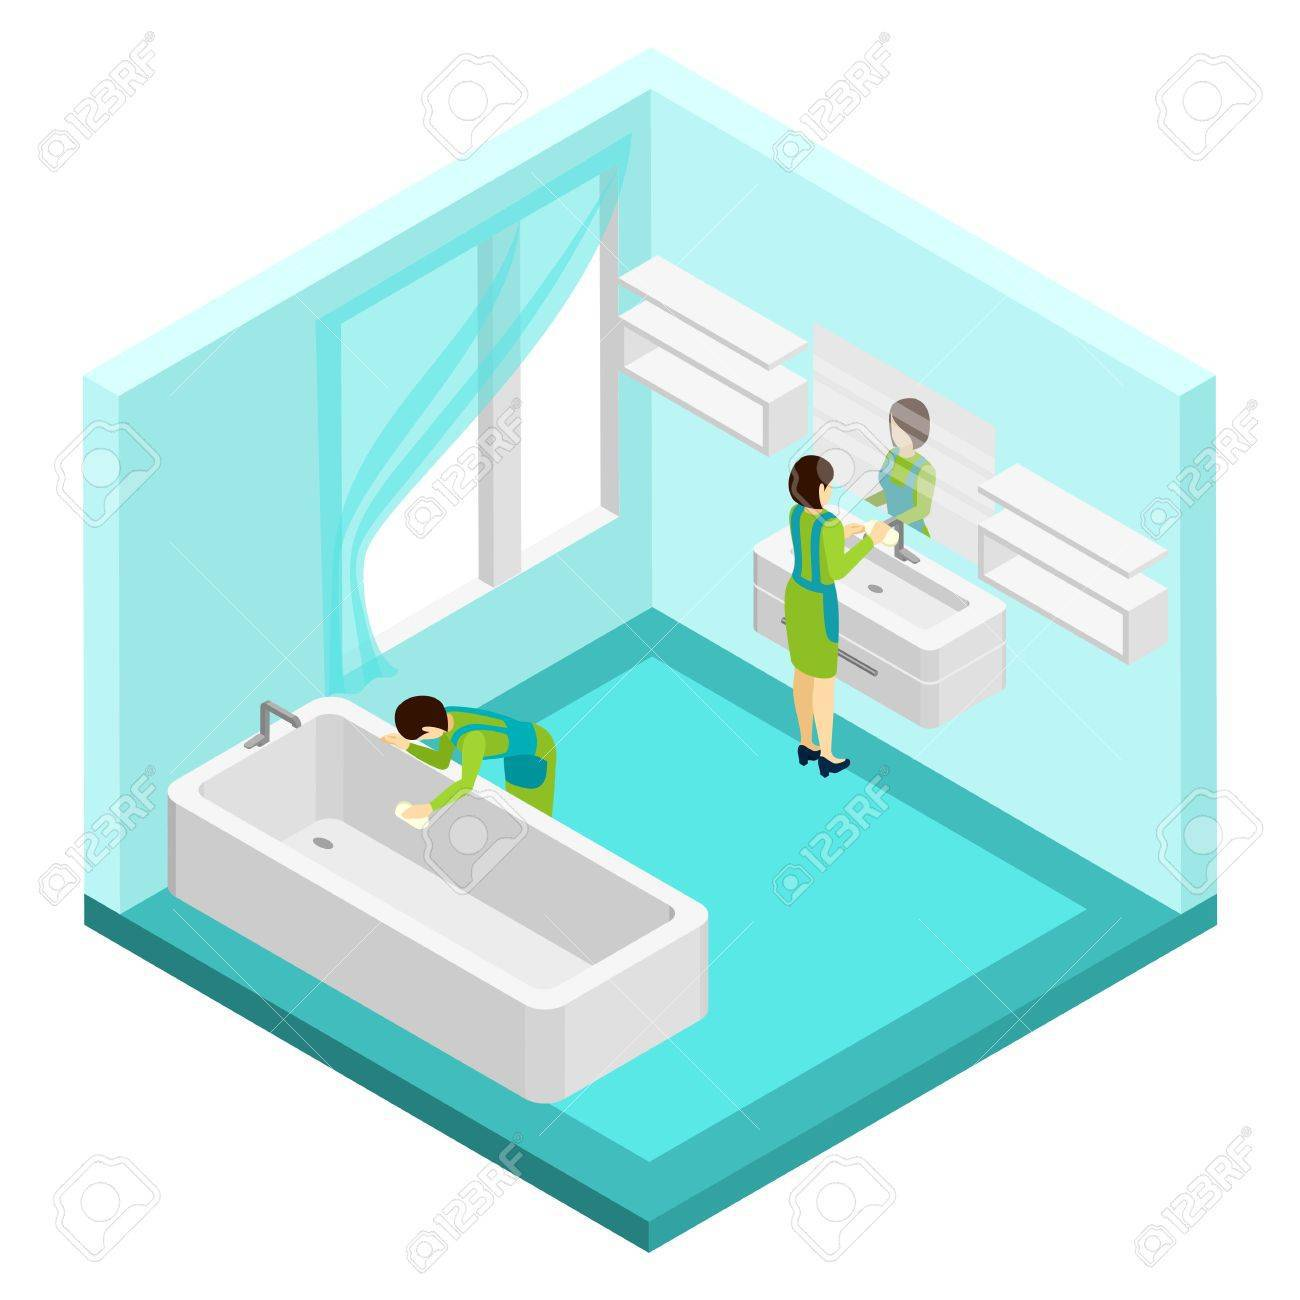 Awesome clipart cleaner background. Unbelievable bathroom sink royalty